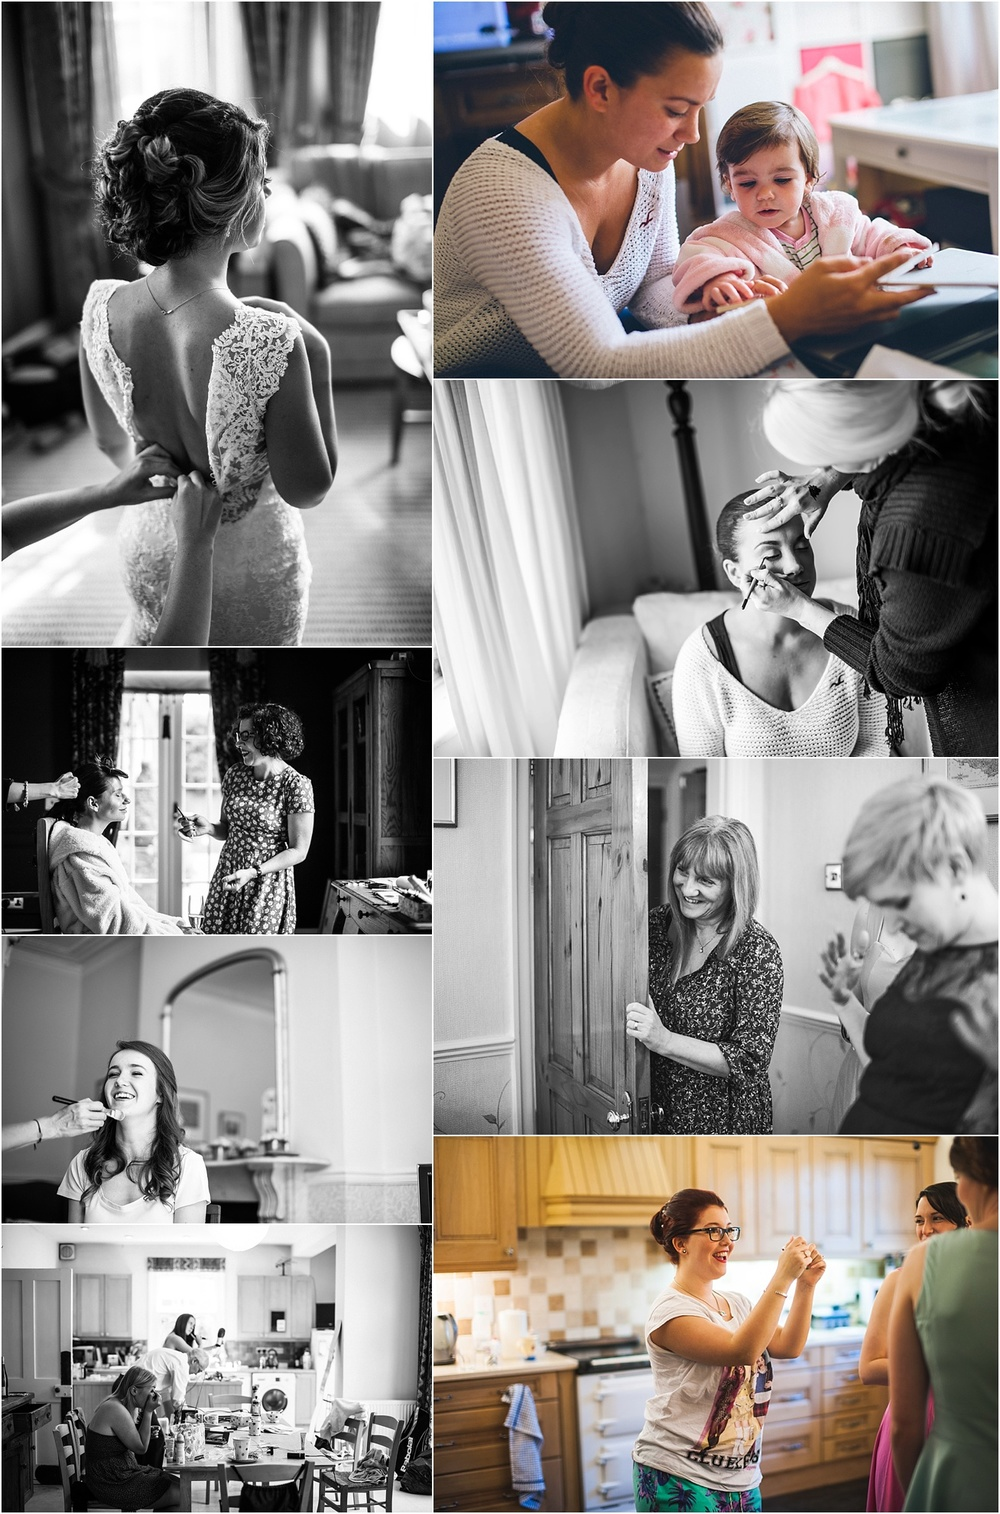 bridal preparation, national wedding photographer, kent, surrey, london, cambridge, essex, sussex, hampshire, uk